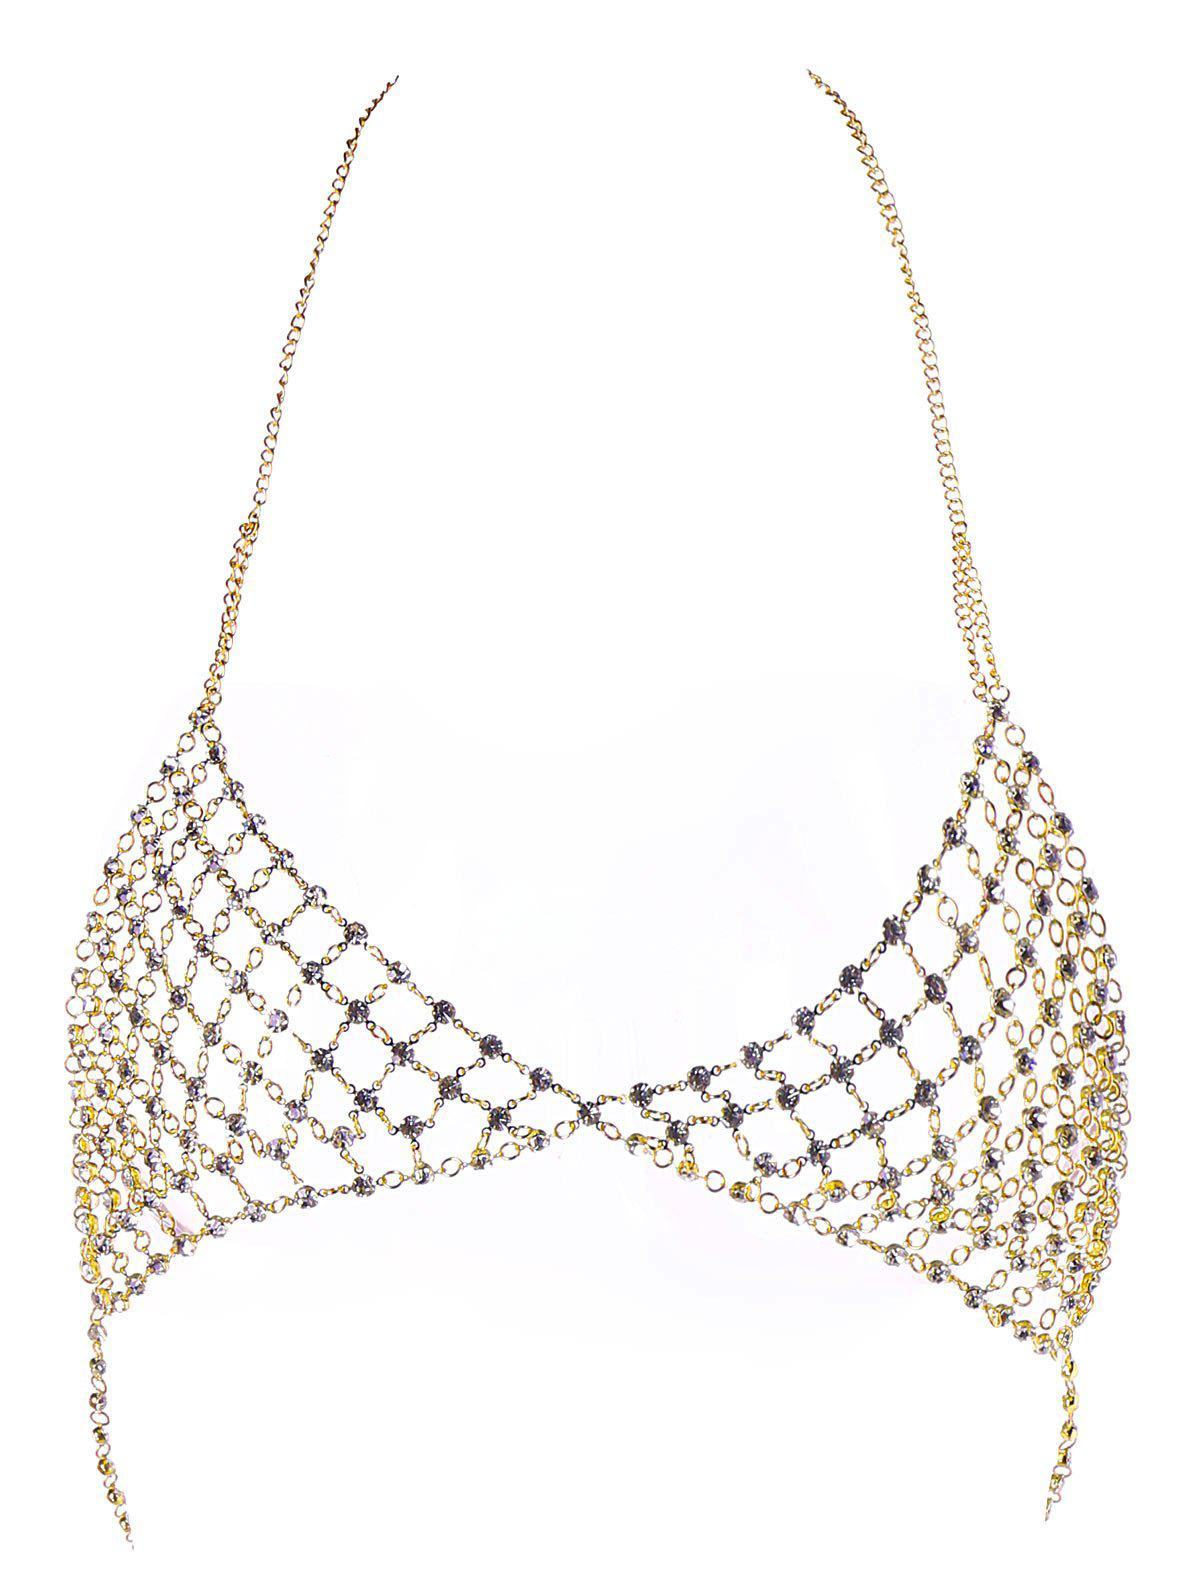 Chic Faux Rhinestone Body Chain Bra